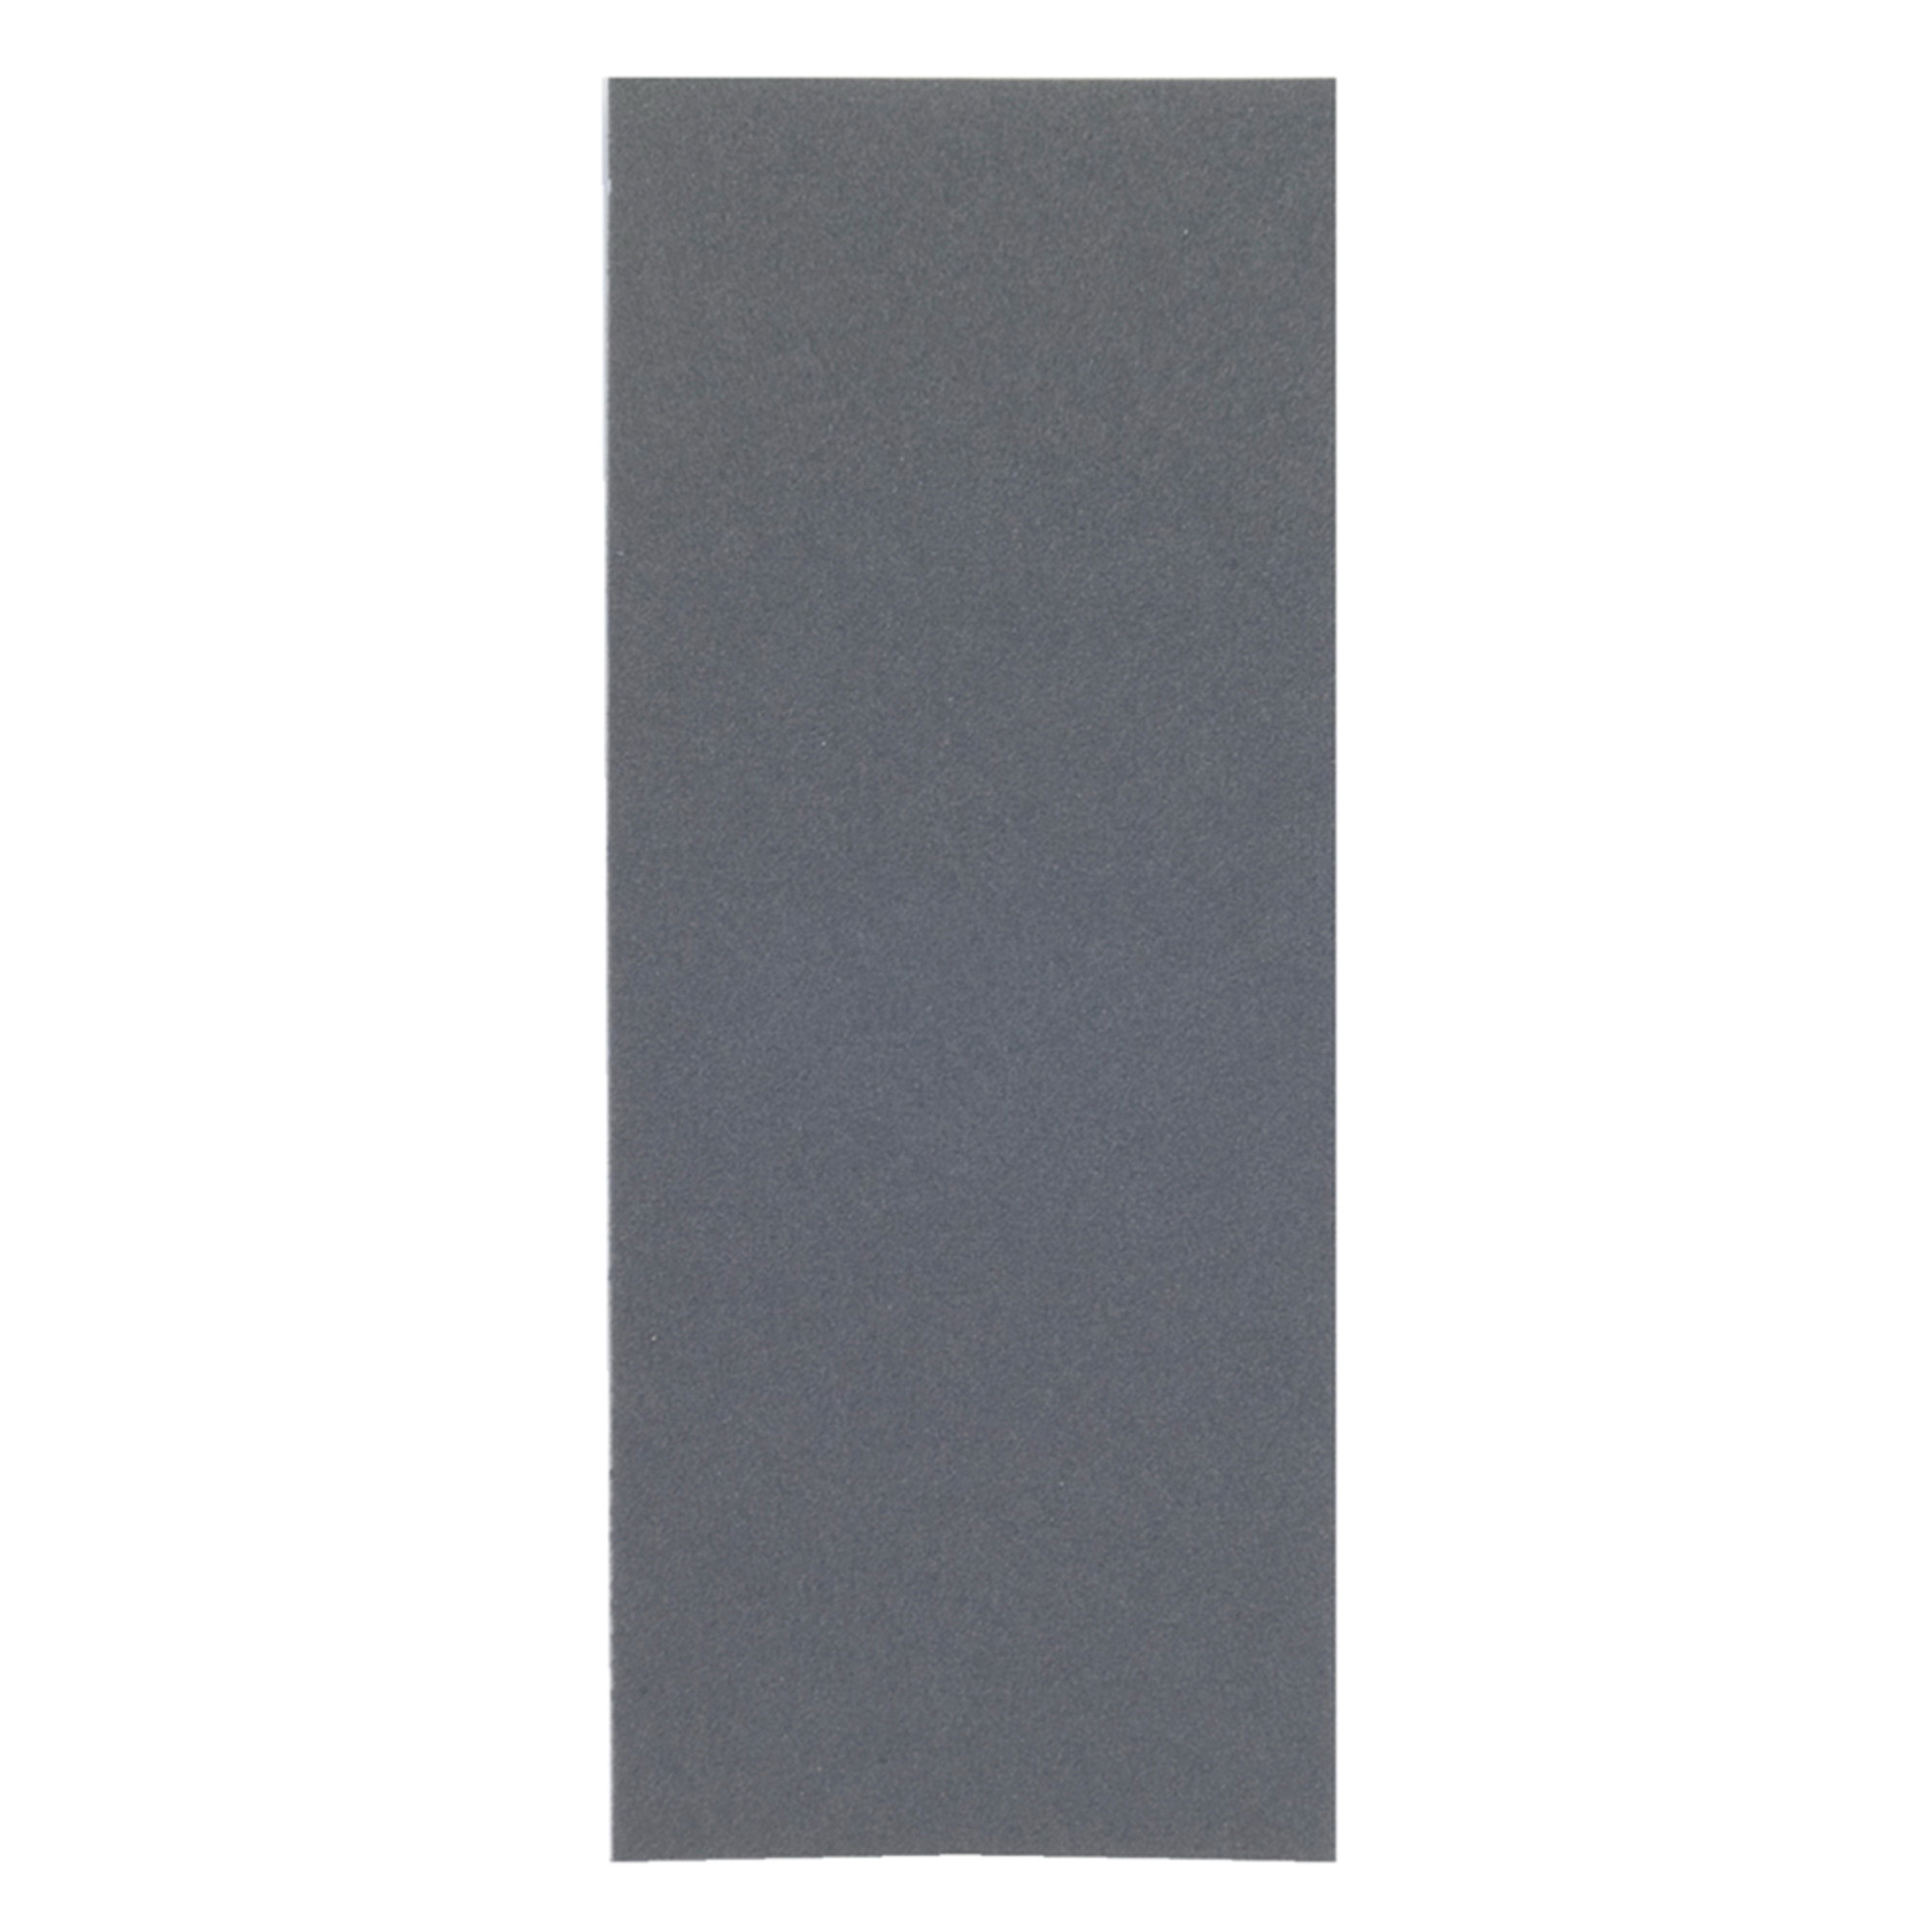 Norton® Blue-Bak™ 66261139357 T414 Coated Sandpaper Sheet, 9 in L x 3-2/3 in W, 280 Grit, Extra Fine Grade, Silicon Carbide Abrasive, Paper Backing